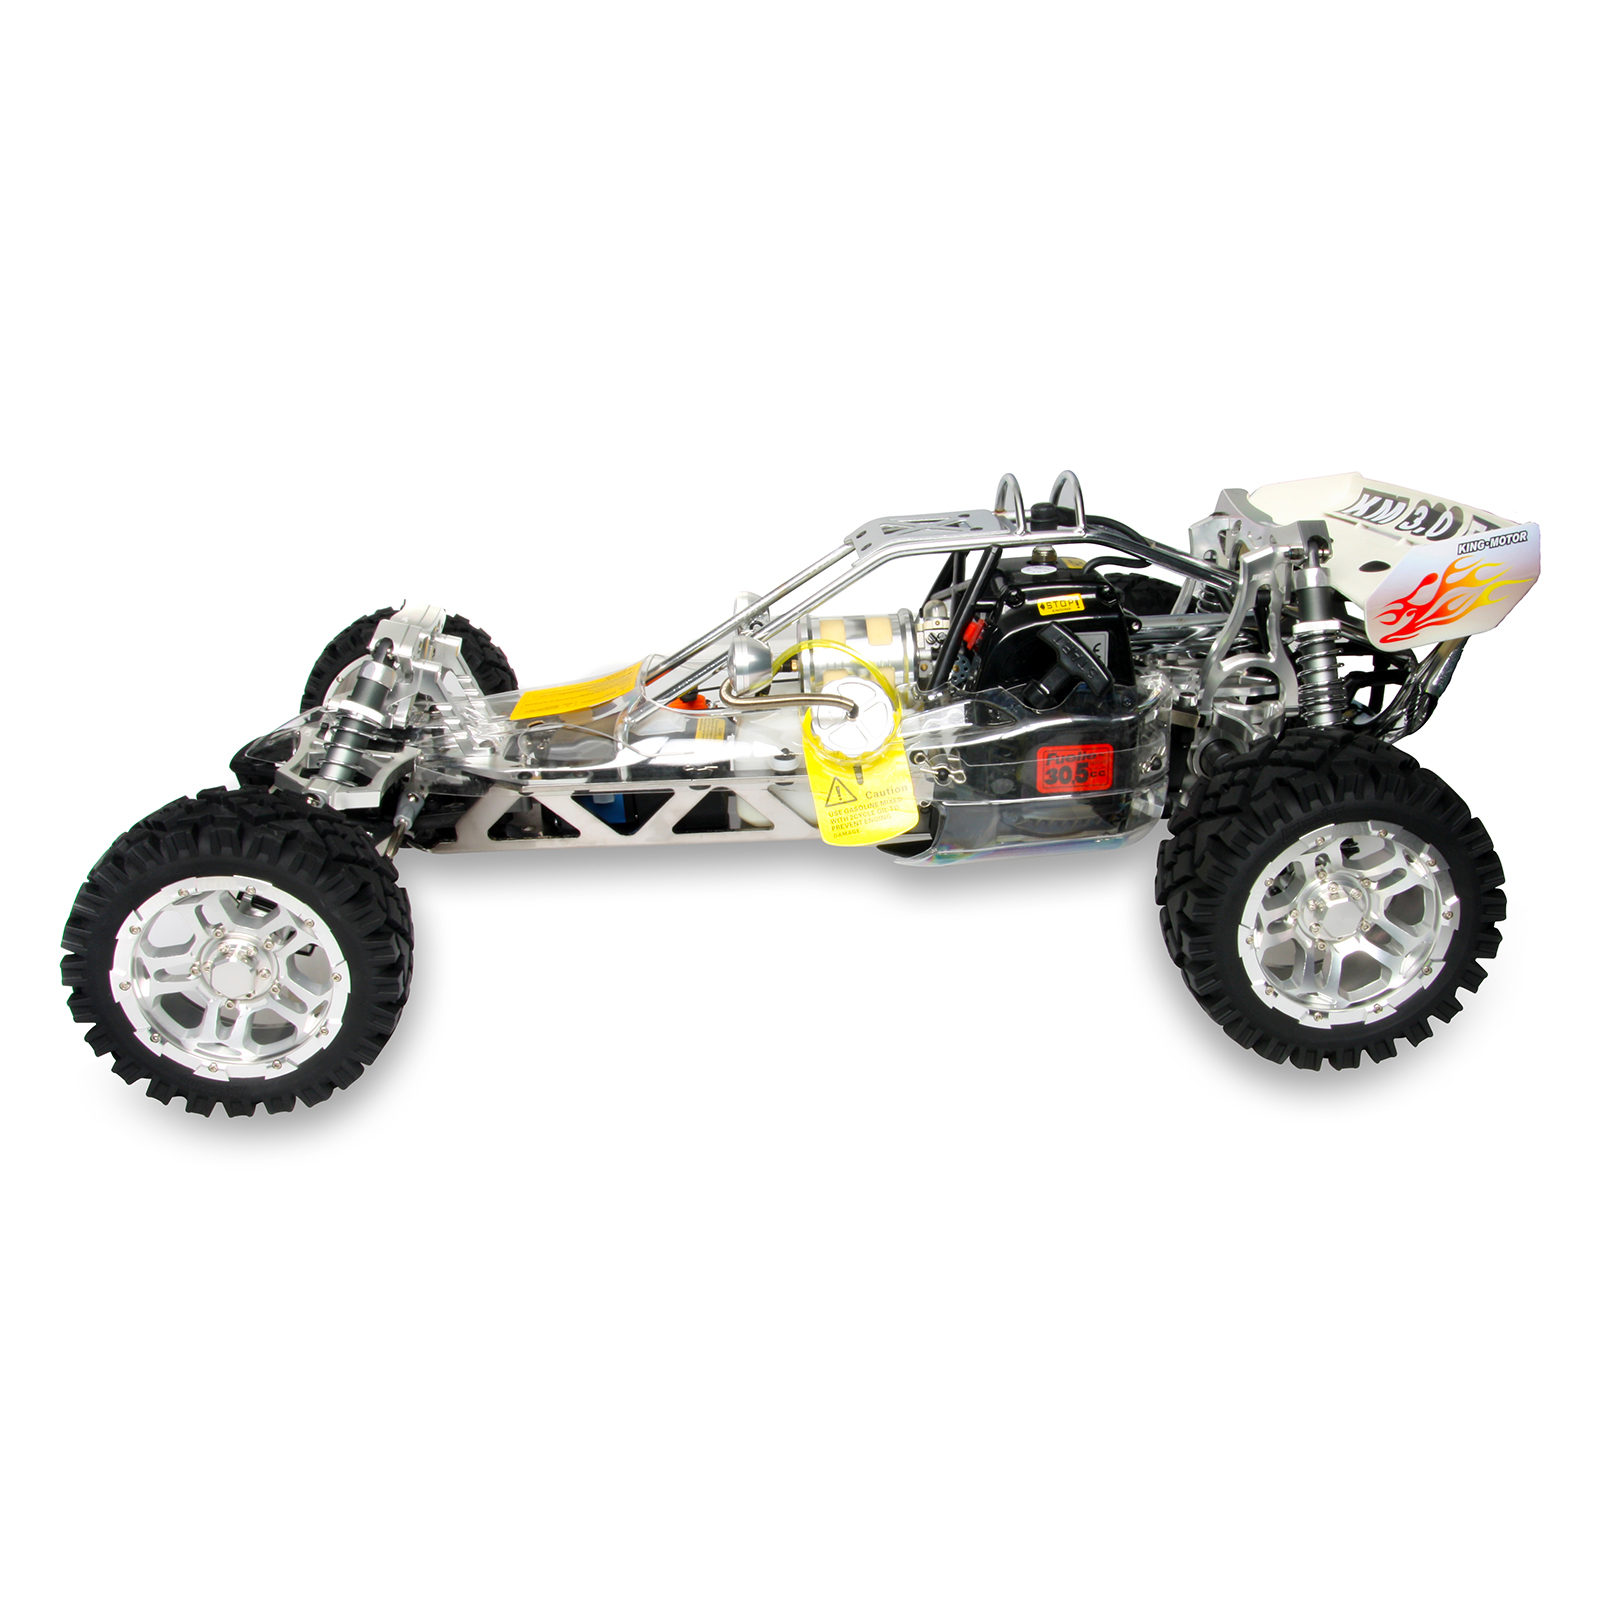 king motor baja km 3 0ex rc buggy at hobby warehouse. Black Bedroom Furniture Sets. Home Design Ideas